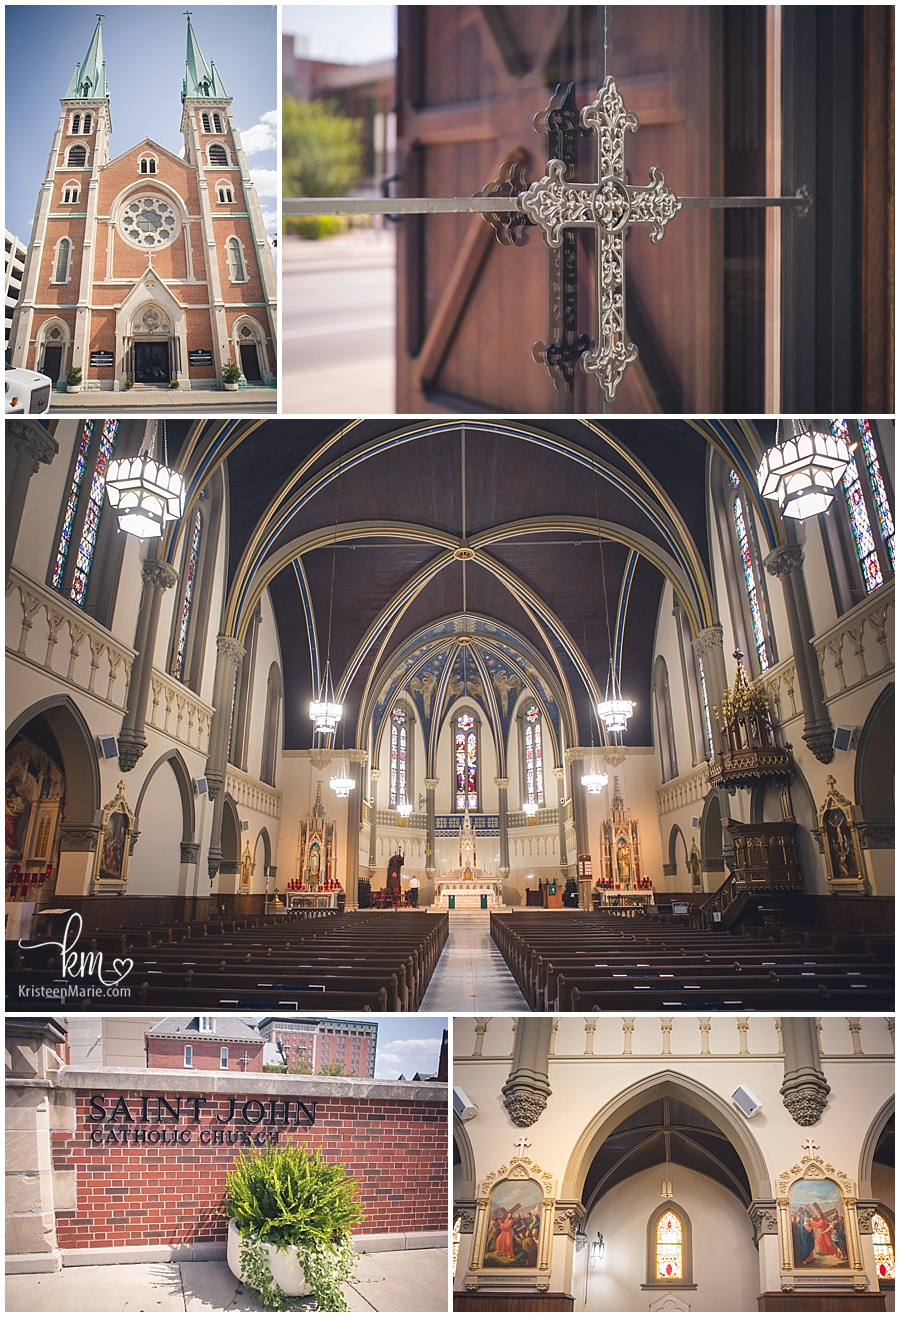 St. John the Evangelist Catholic Church in Indianapolis, IN